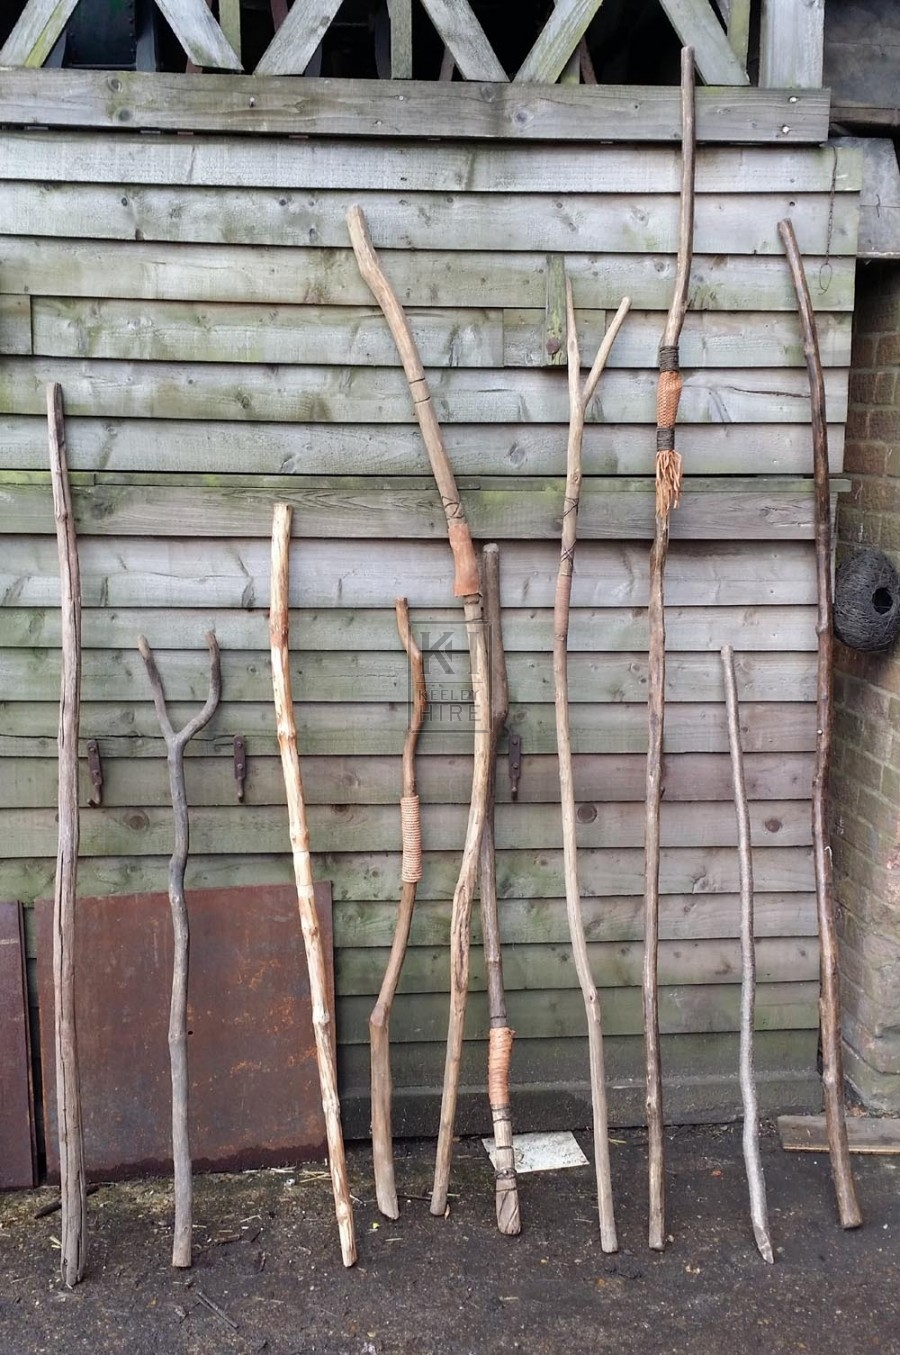 Wood staves